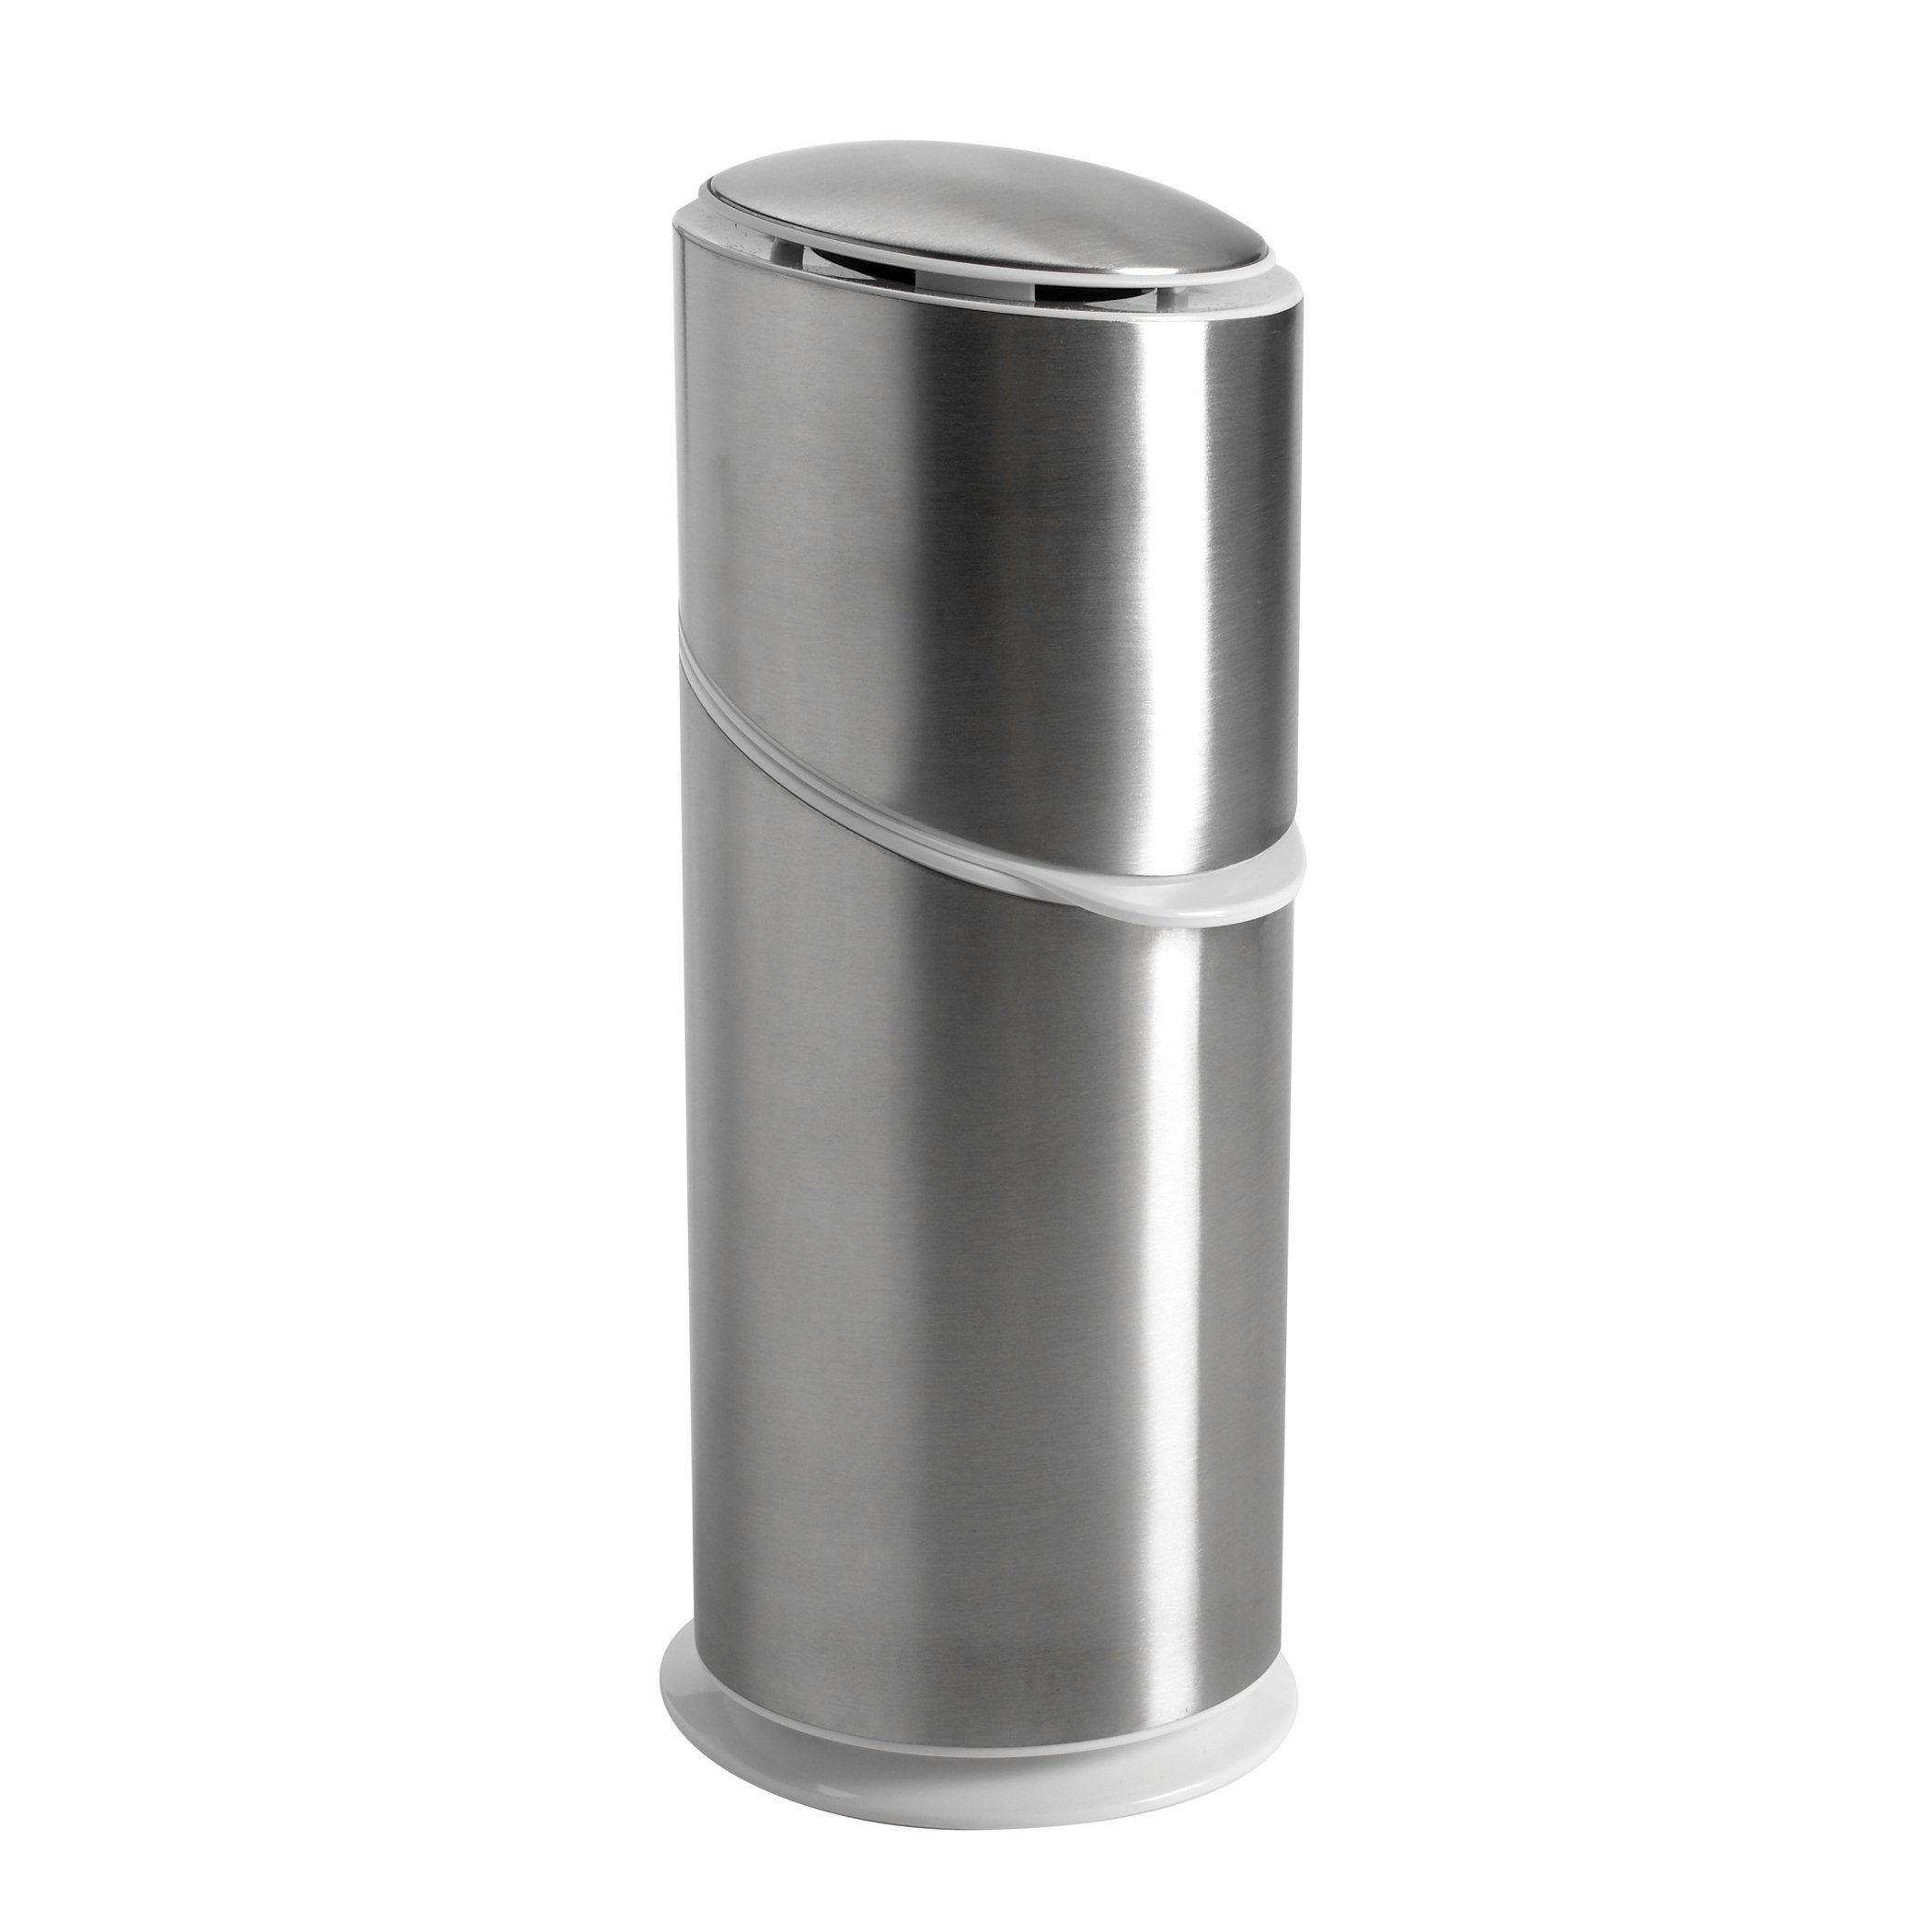 OXO Good Grips Stainless Steel Toothbrush Organizer by OXO